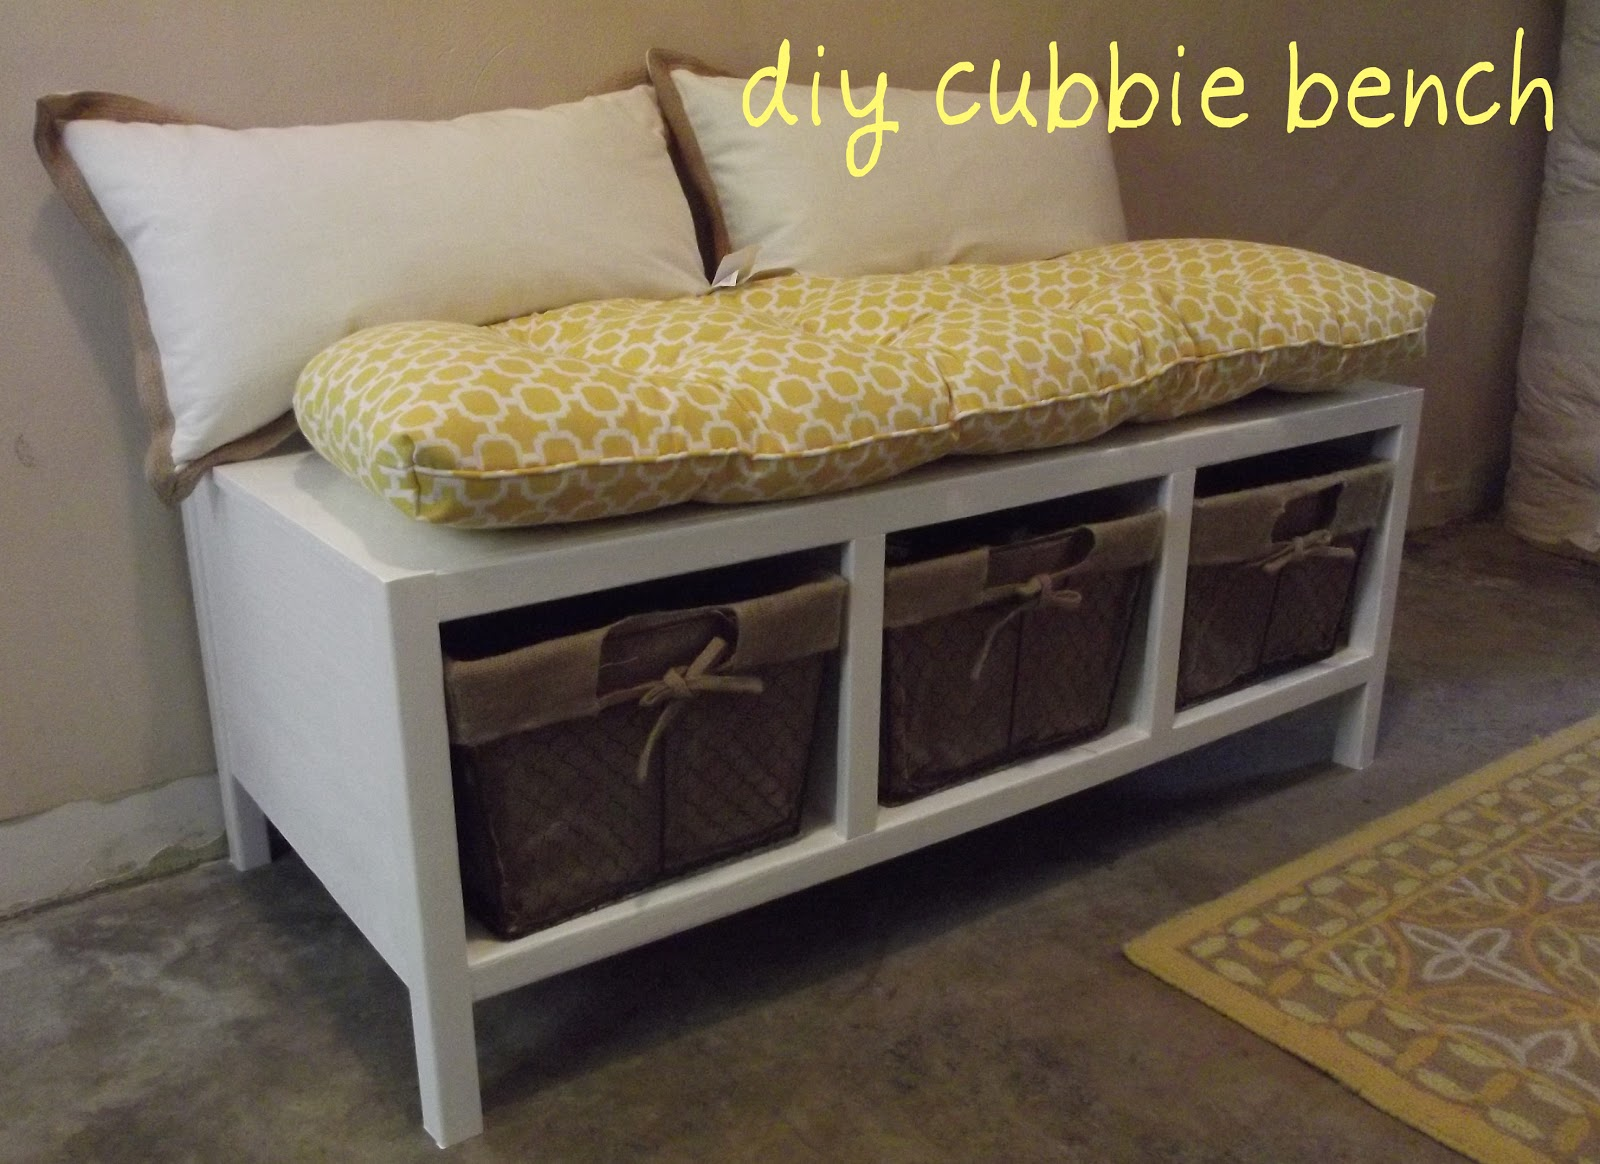 See Steph Do Stuff Diy Cubbie Bench